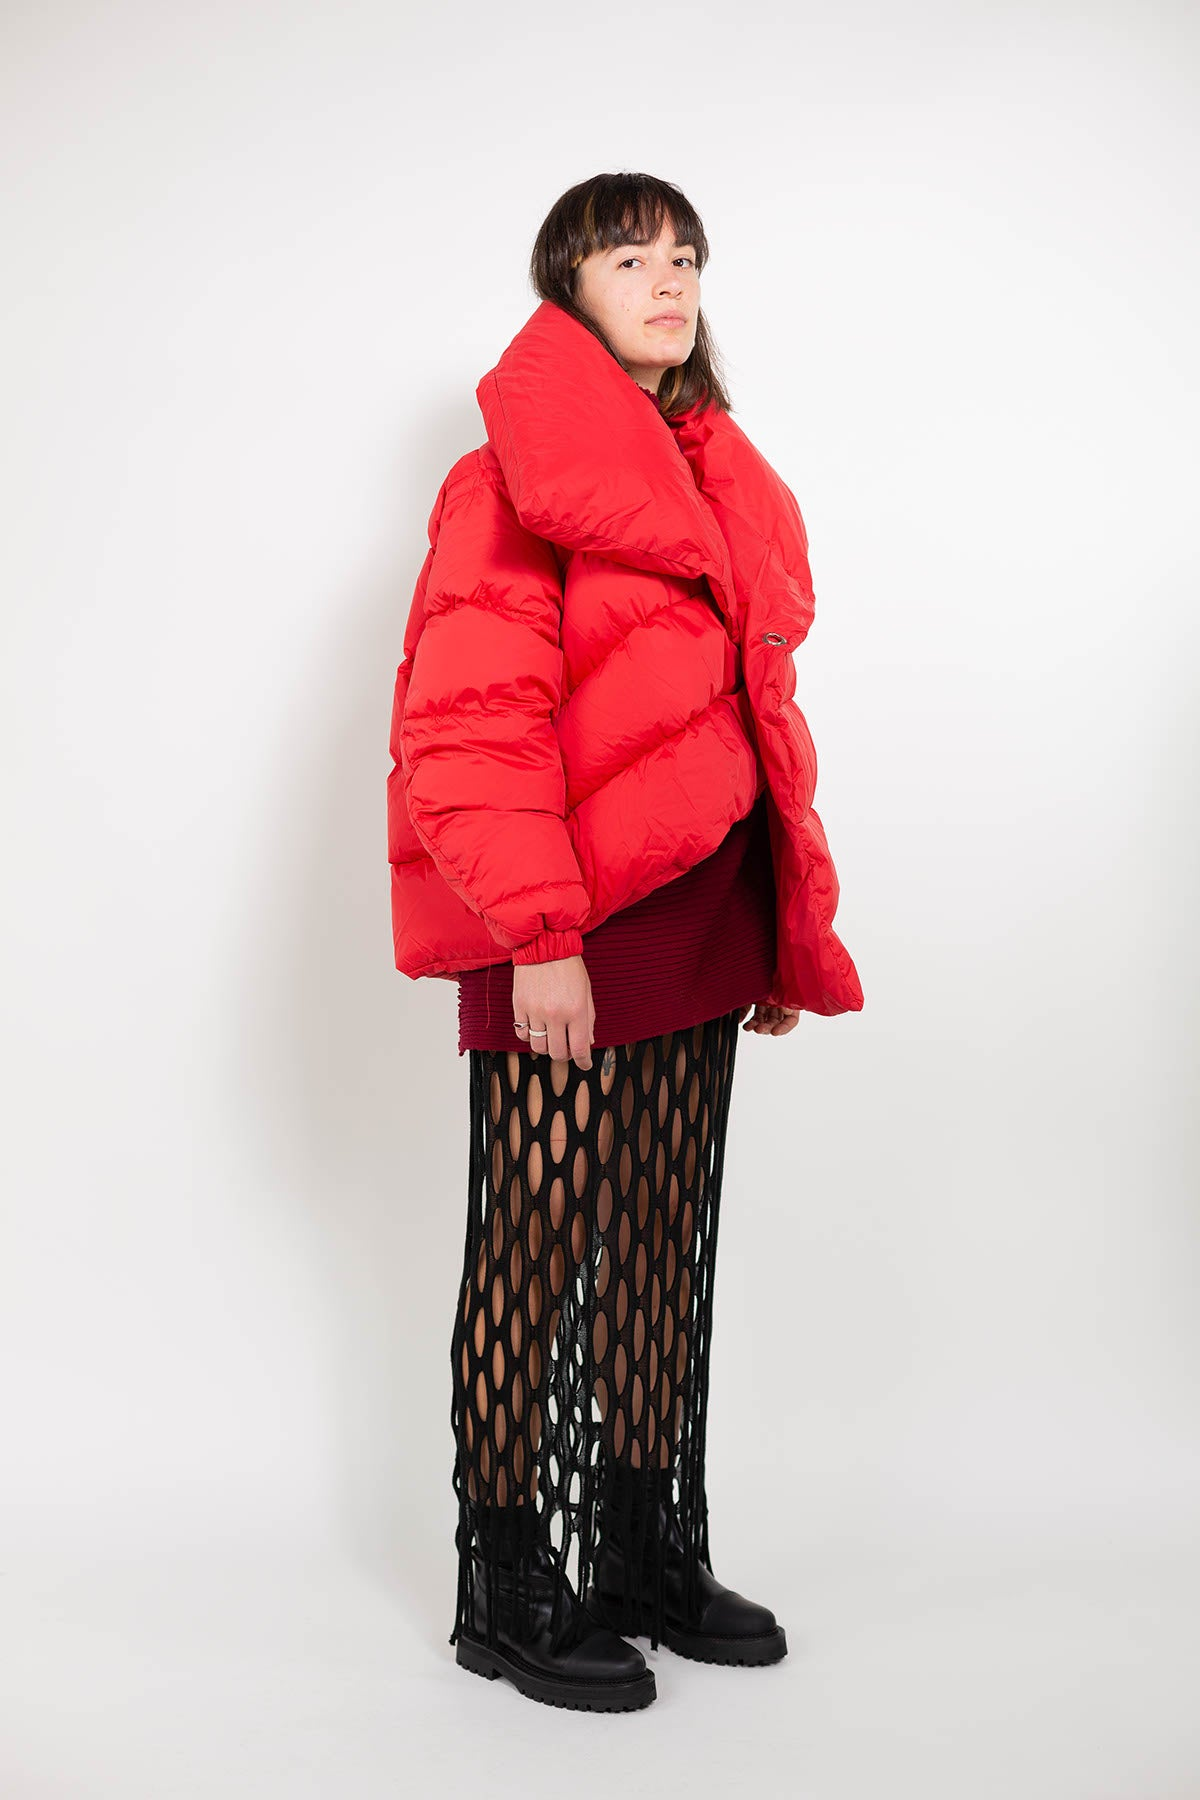 CLASSIC M'A RED PUFFA JACKET